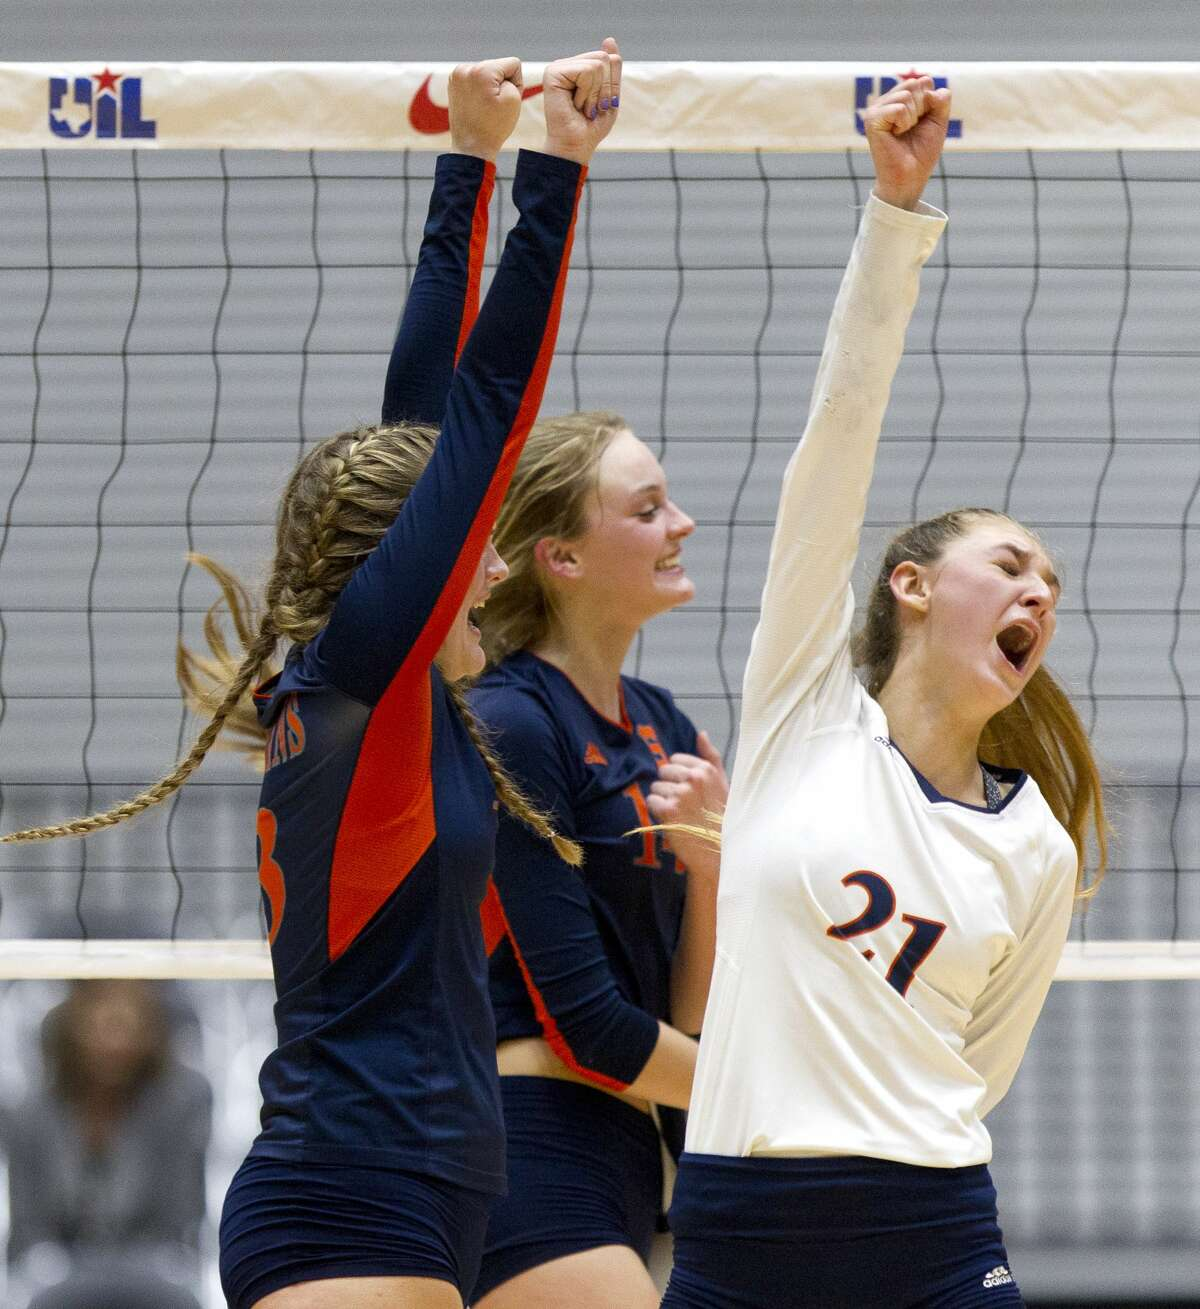 Katy Seven Lakes defensive specialist Natalie Winter (21) celebrates a point during the second set of a Class 6A semifinal volleyball match at the UIL state tournament, Friday, Nov. 17, 2017, in Garland.